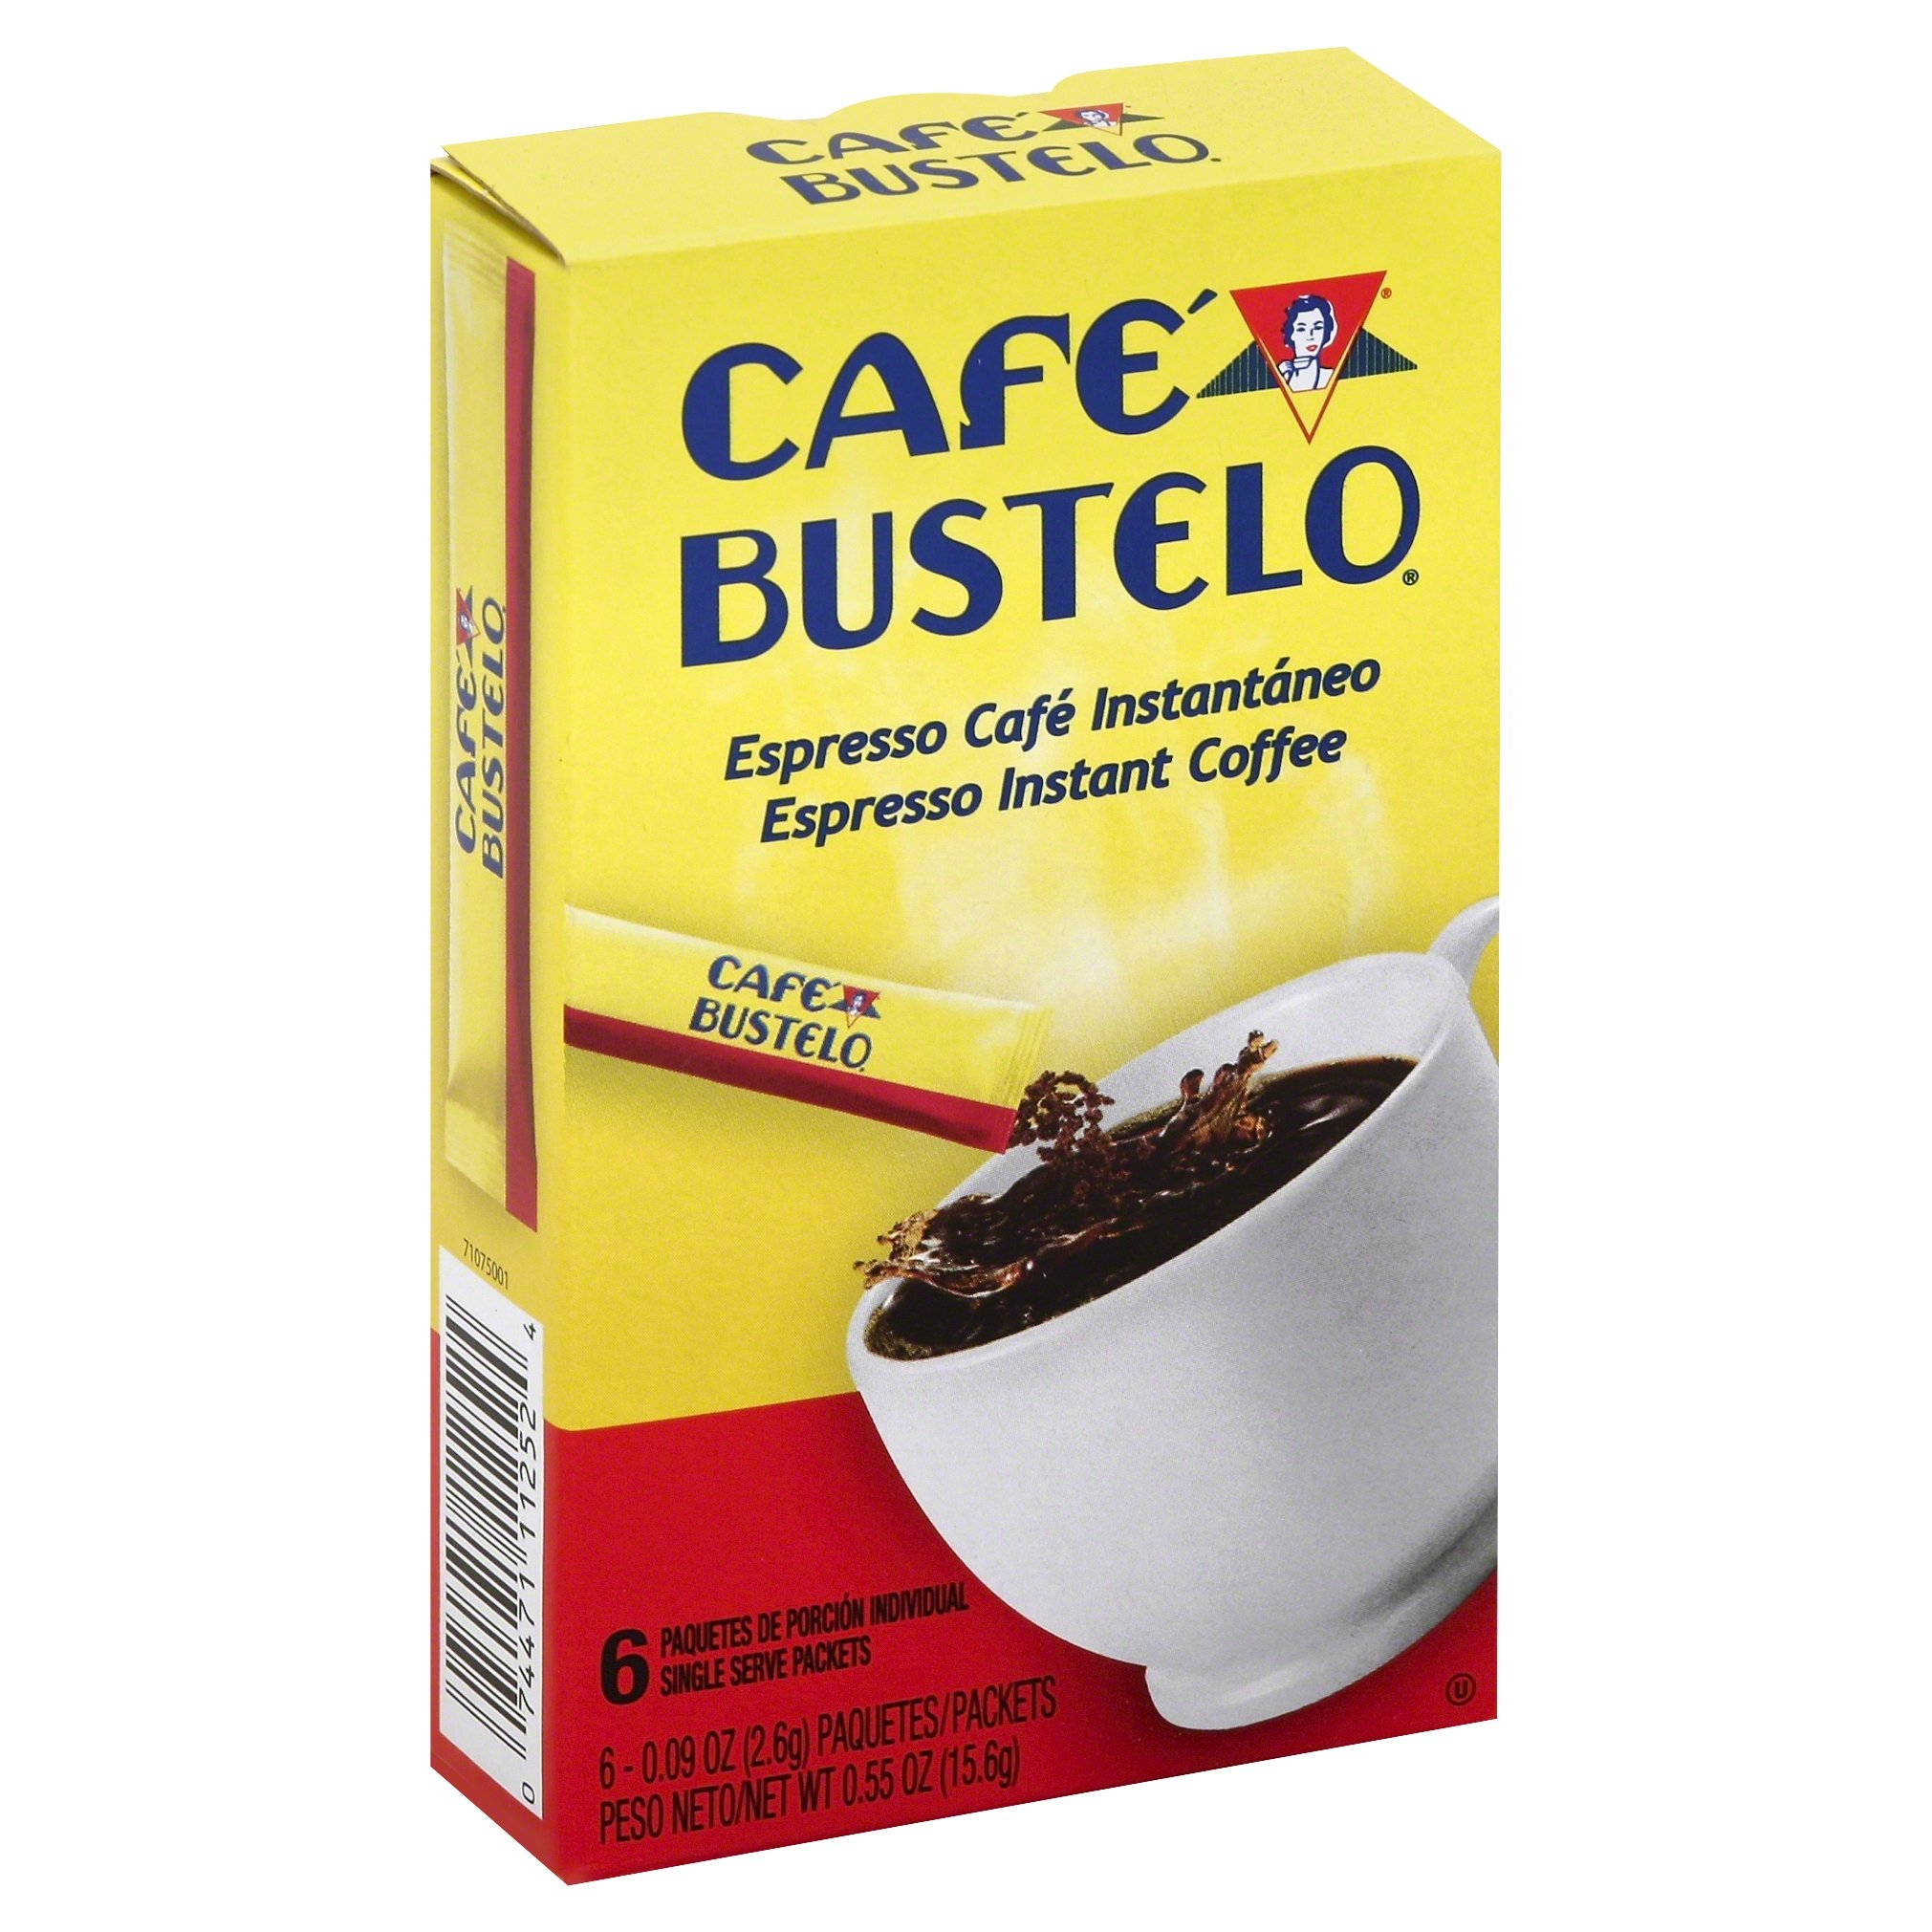 Café Bustelo Instant Coffee Single Serve Packets, 6 Count (Pack of 12) by Cafe Bustelo